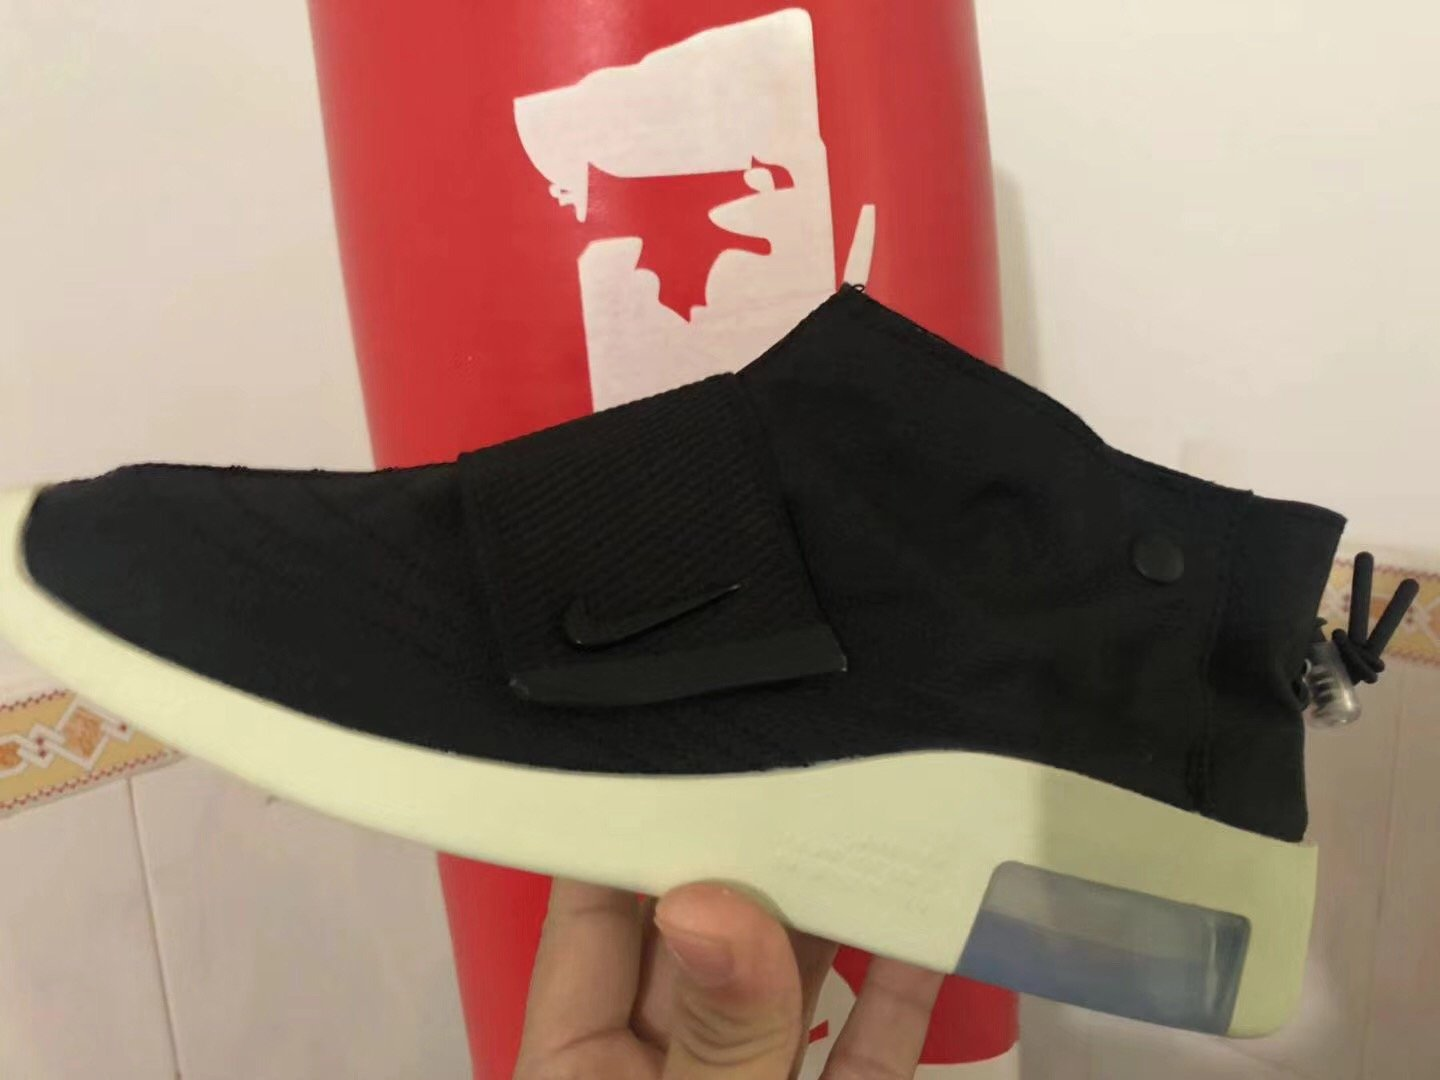 Nike Air Fear of God Moccasin Black Release Date